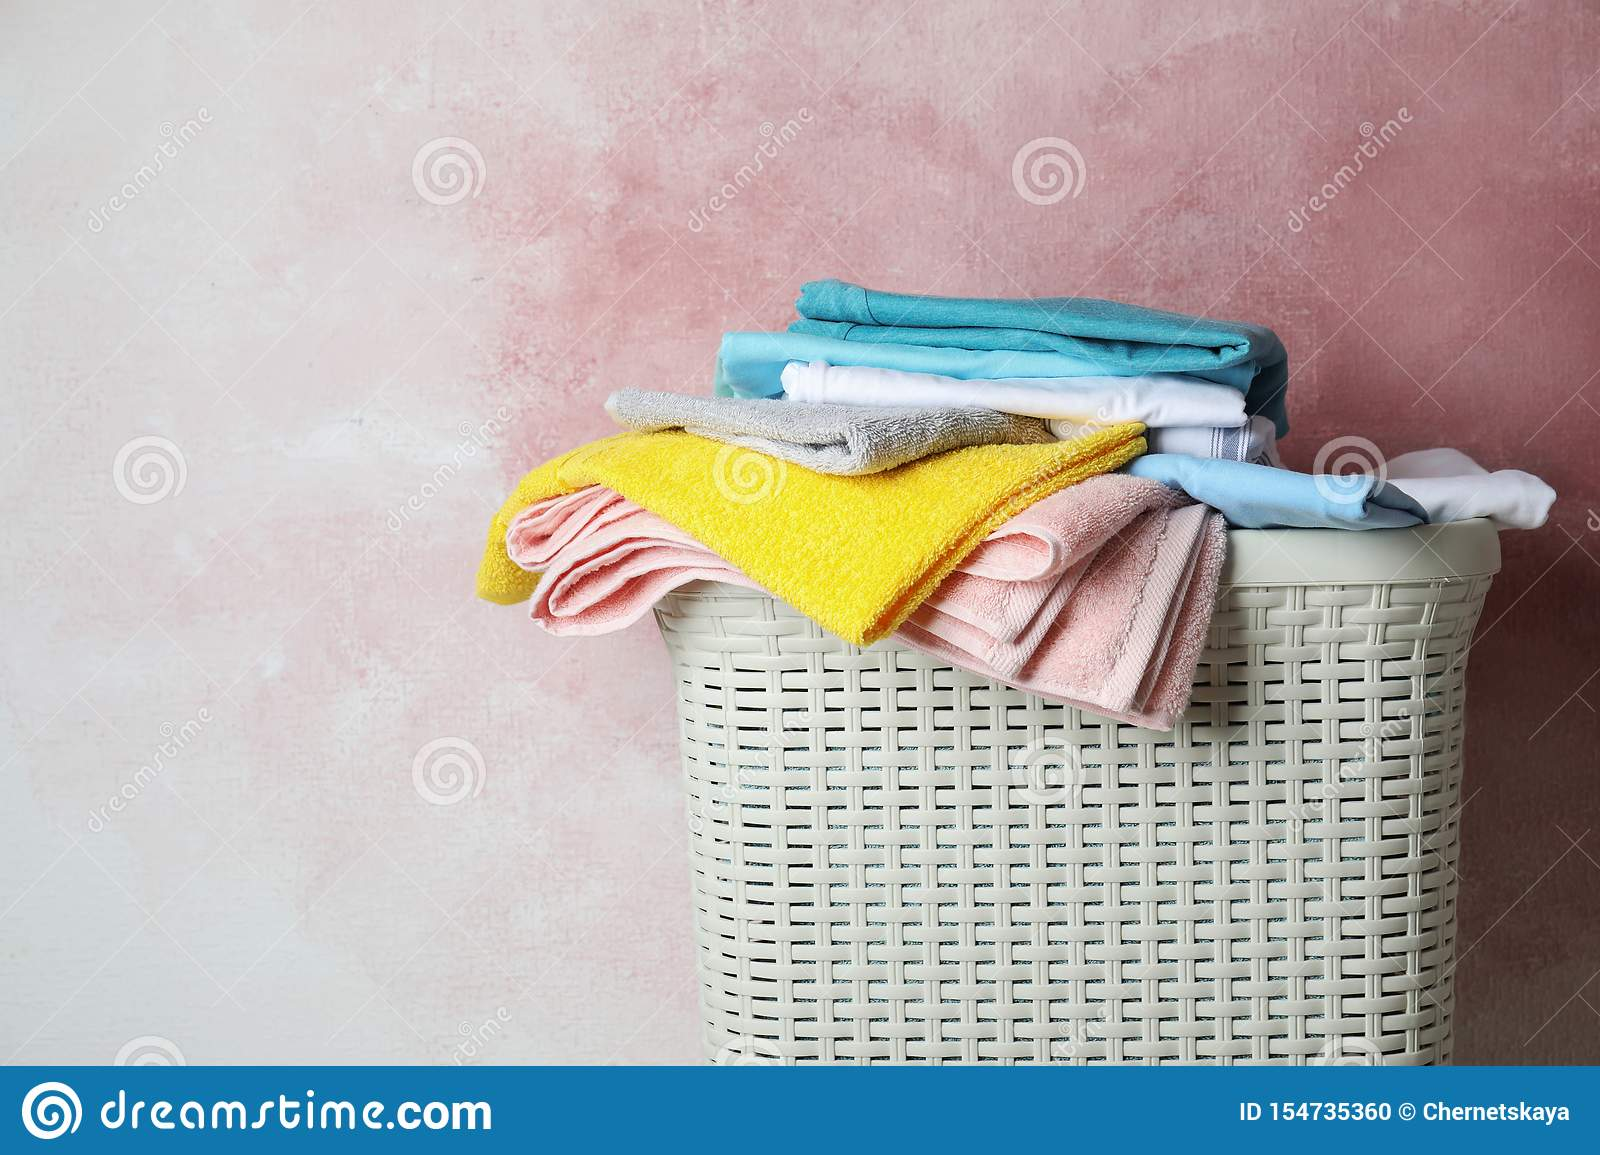 Basket with clean laundry on pink background, space for